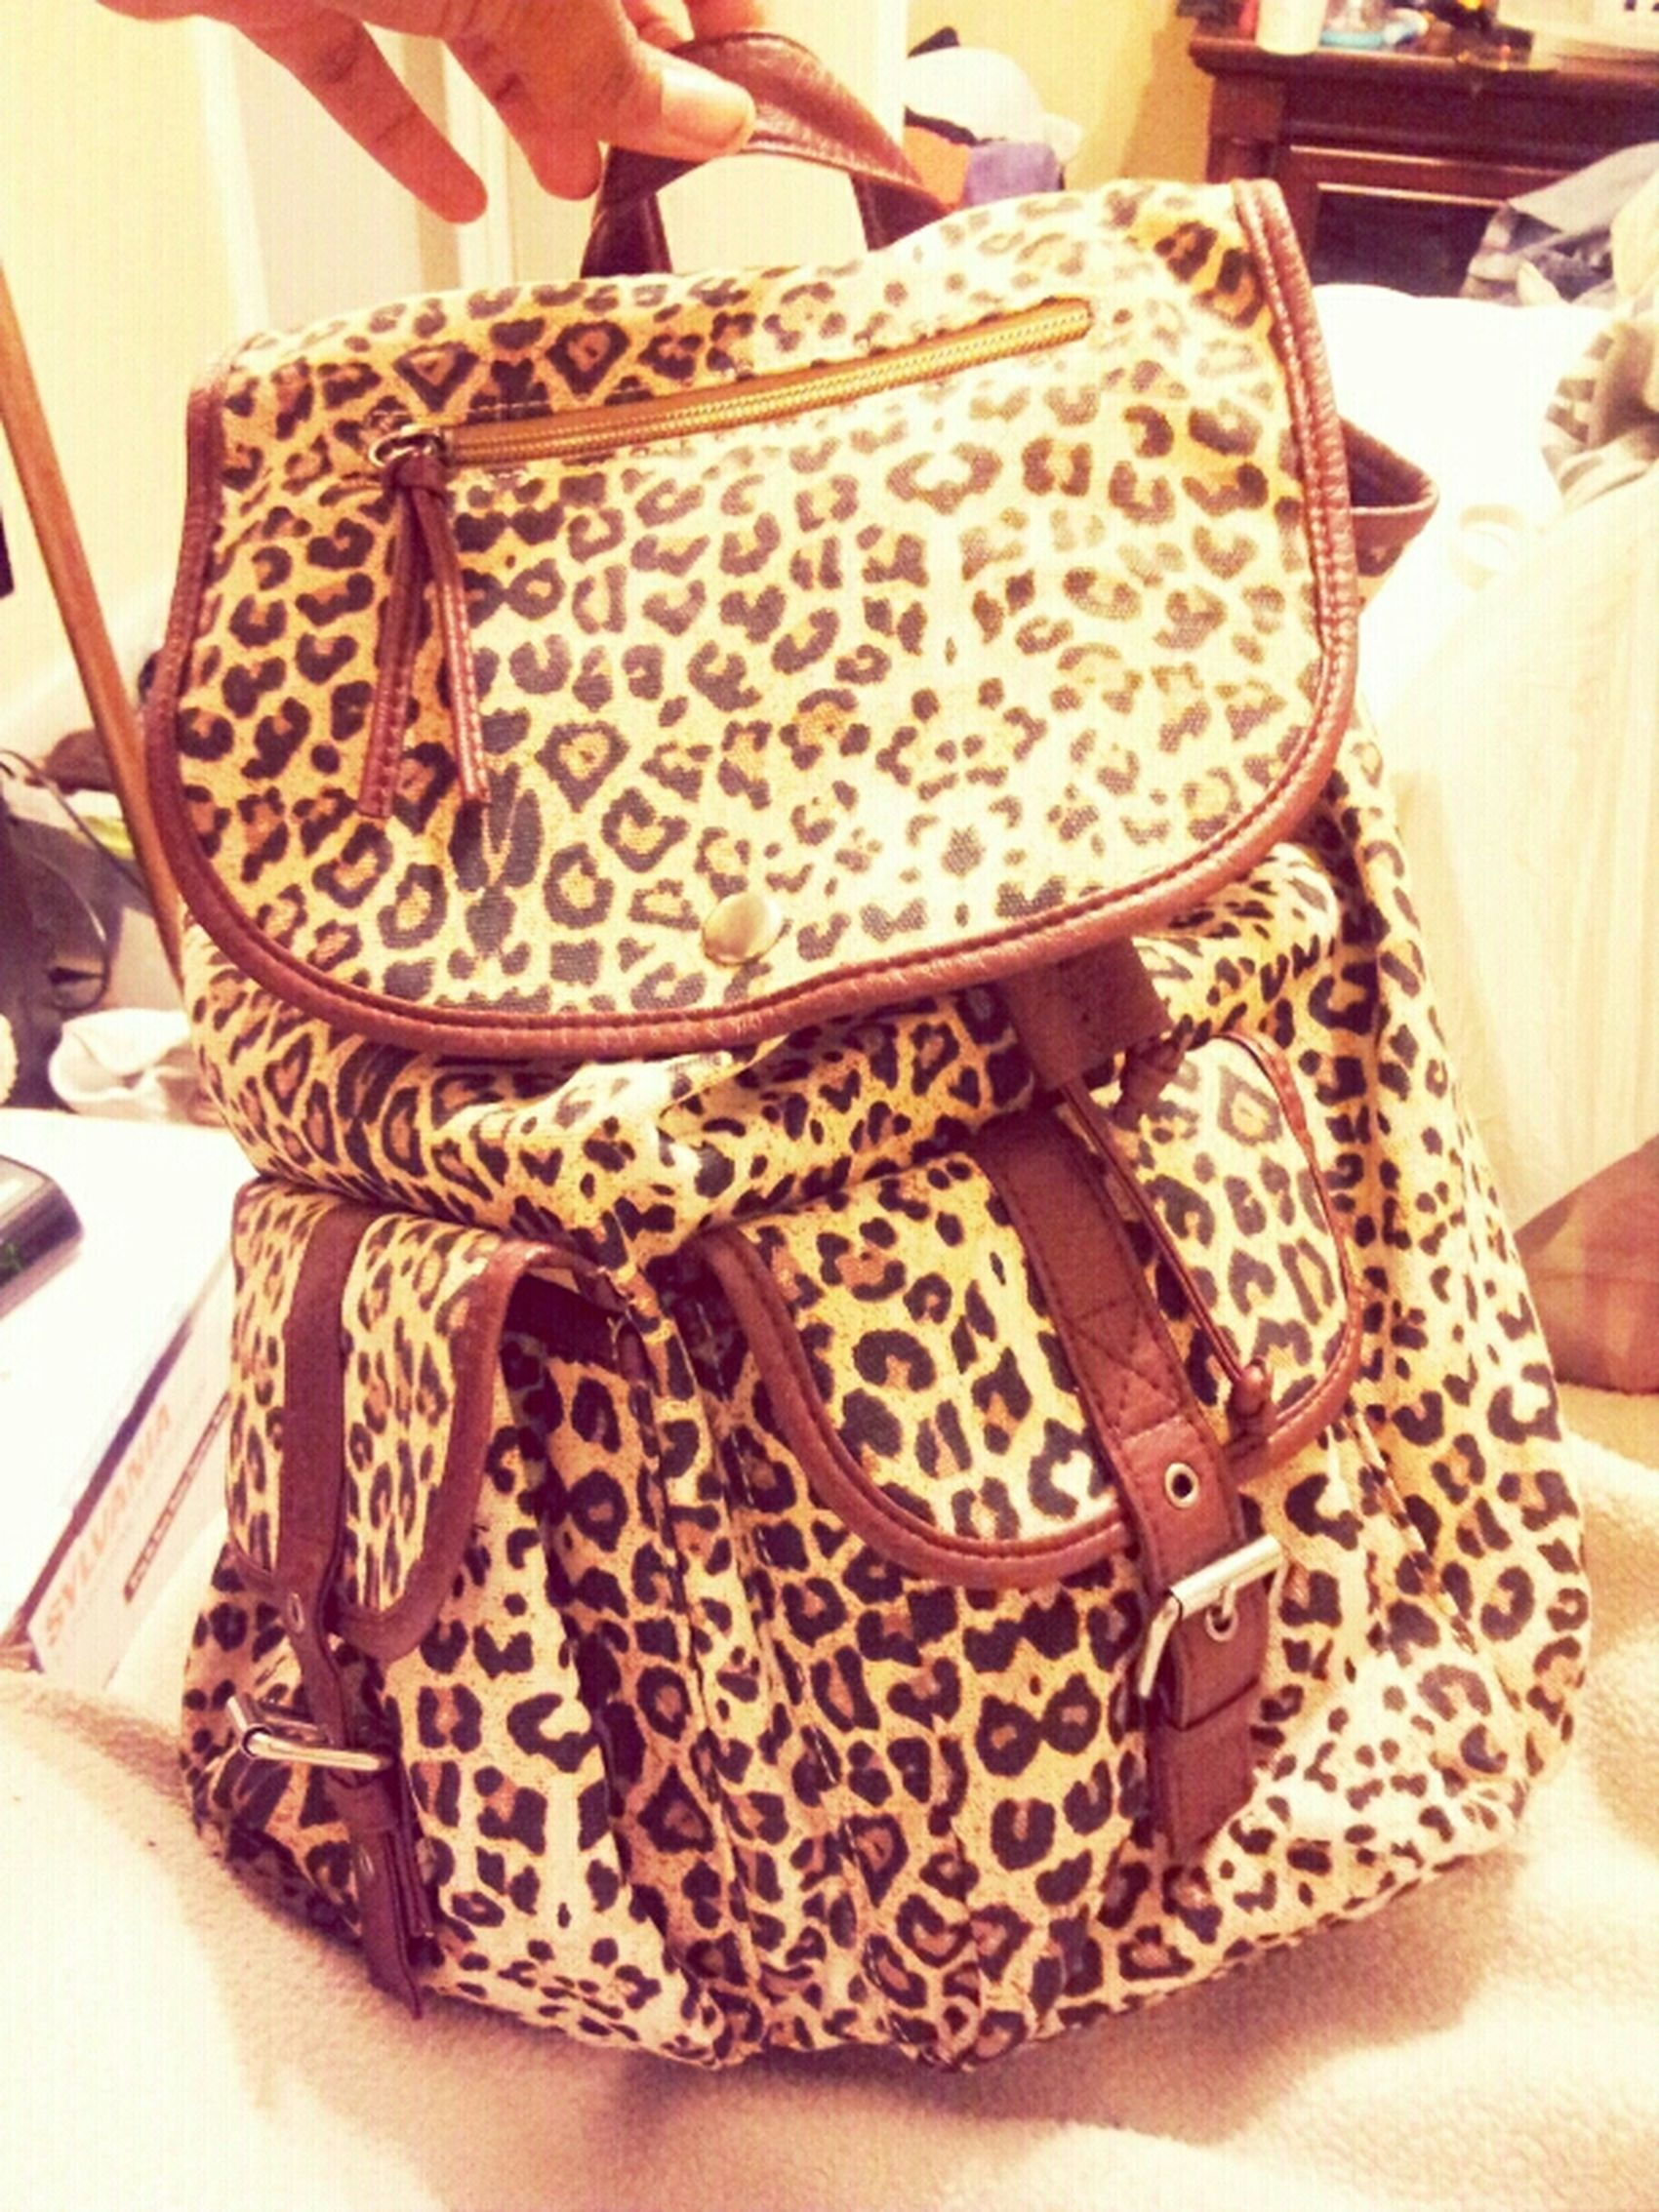 new purse for now #CheetahPrint